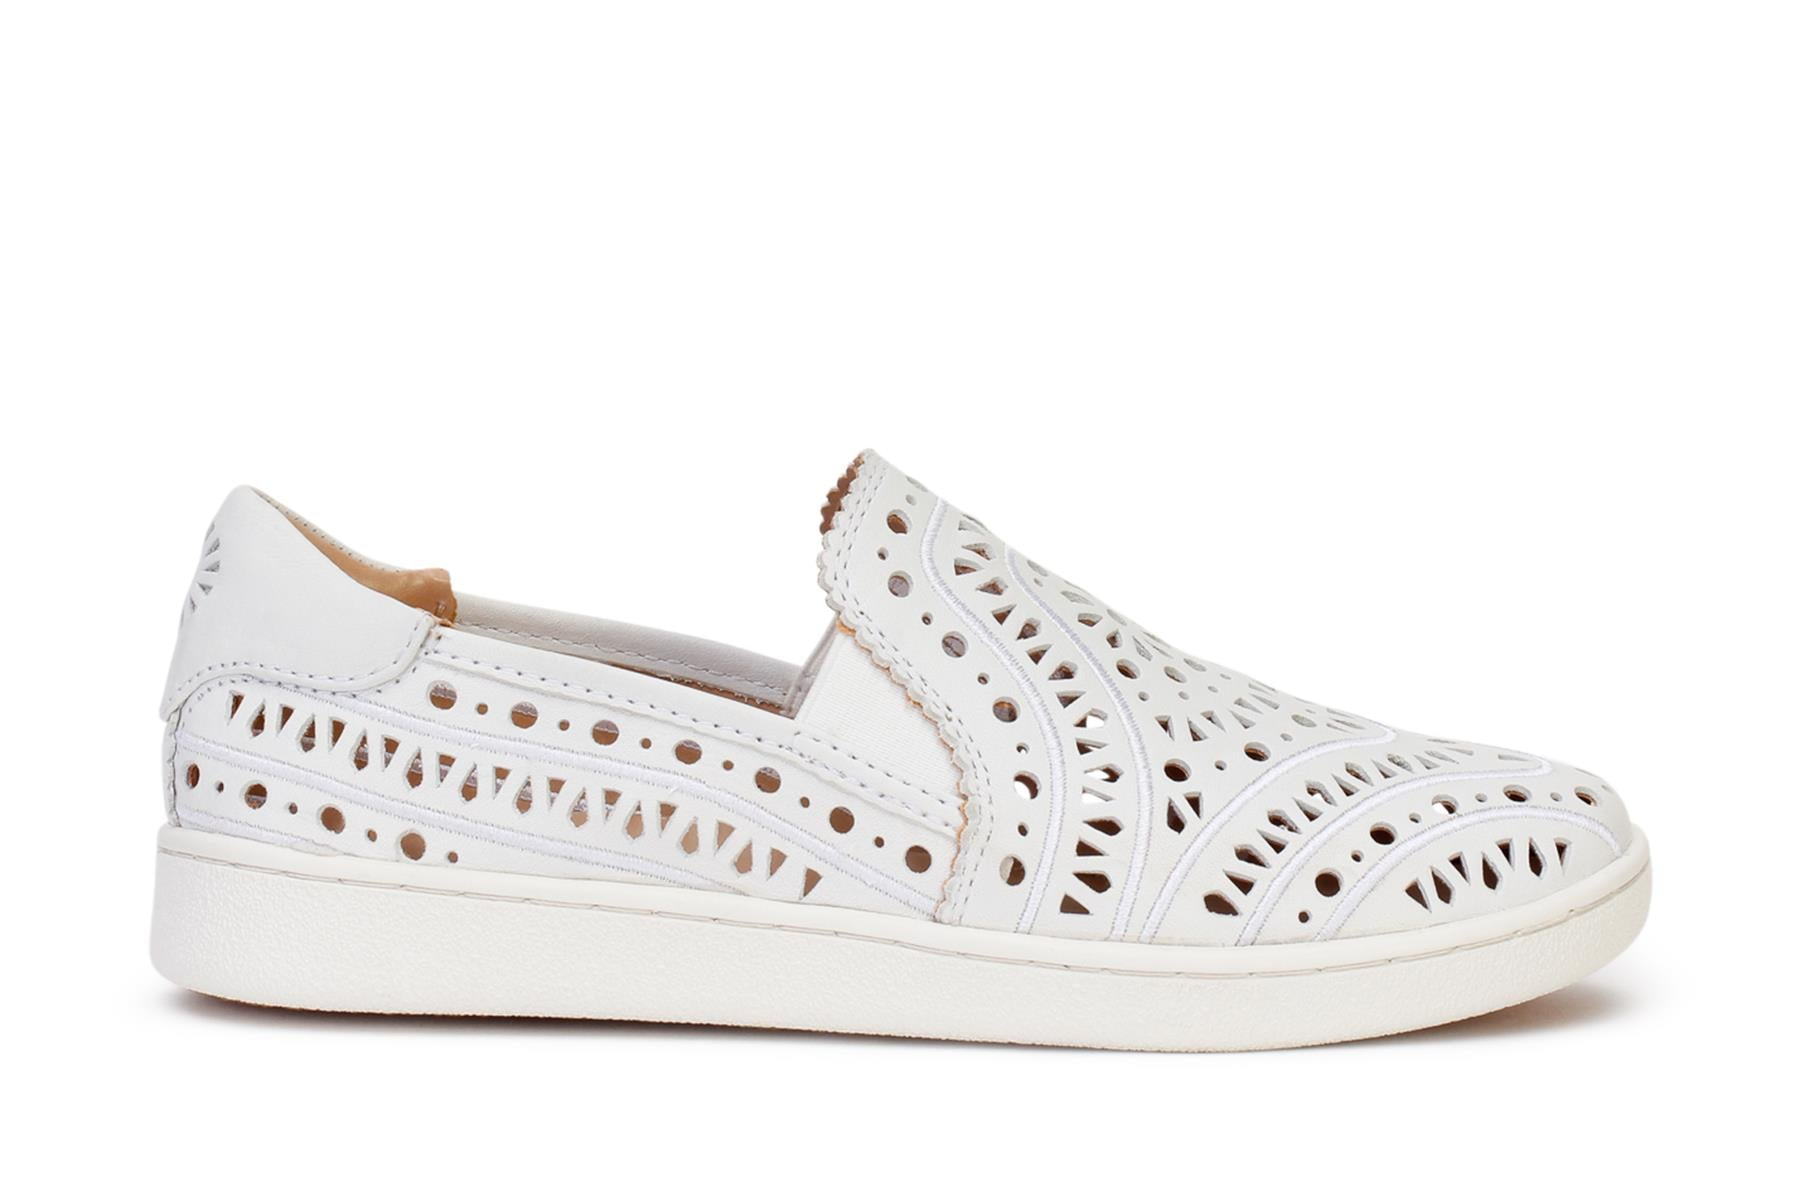 ugg-womens-cas-perf-casual-slip-on-sneakers-white-leather-main